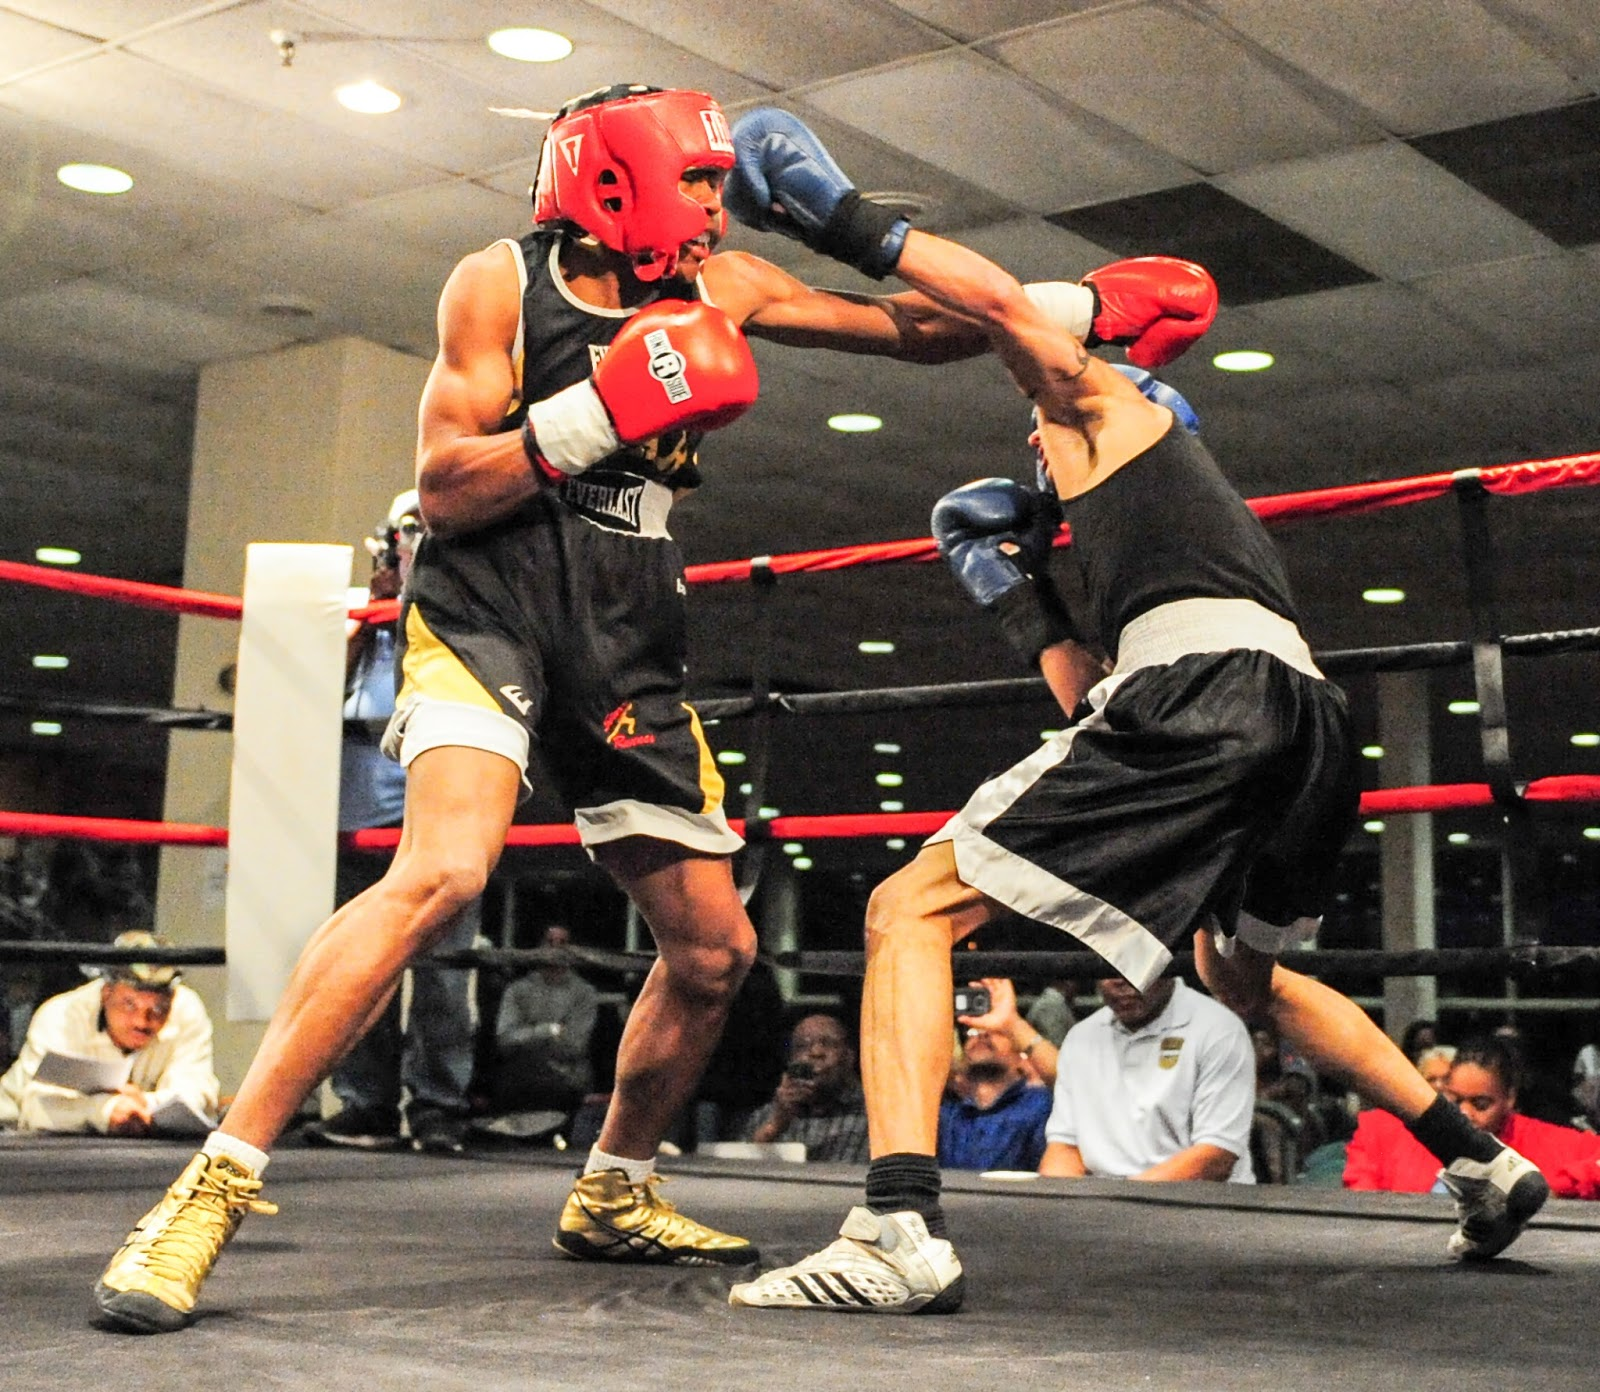 amateur golden gloves boxer